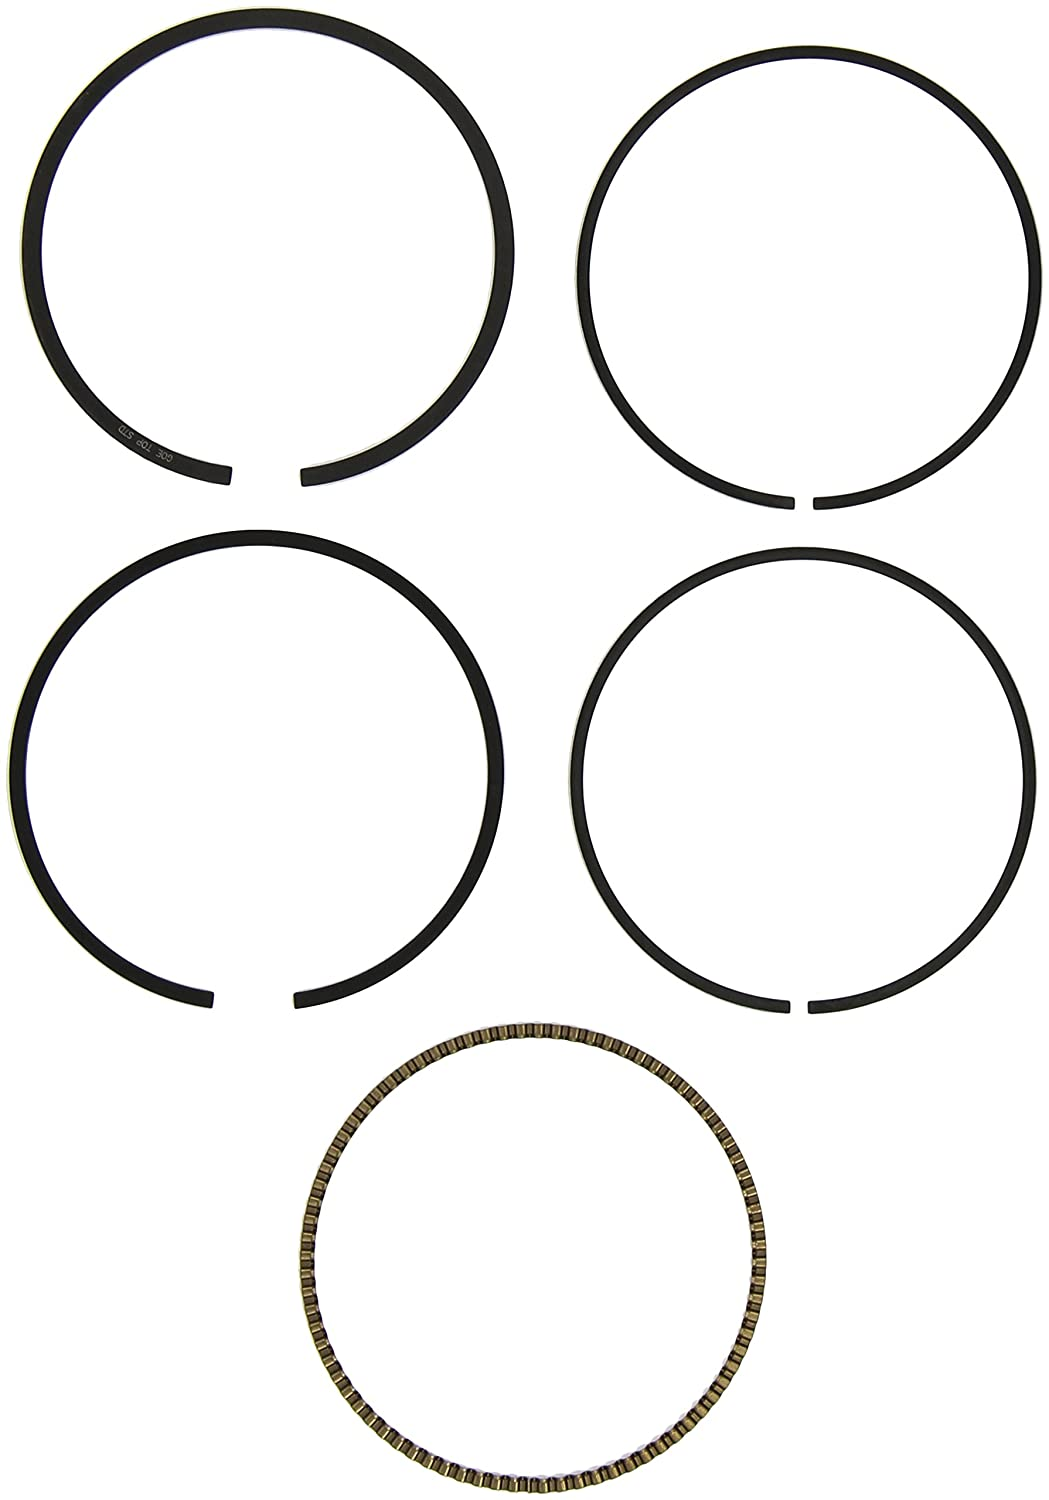 Goetze Engine 08-521600-00 Piston Ring Kit AutoMotion Factors Limited